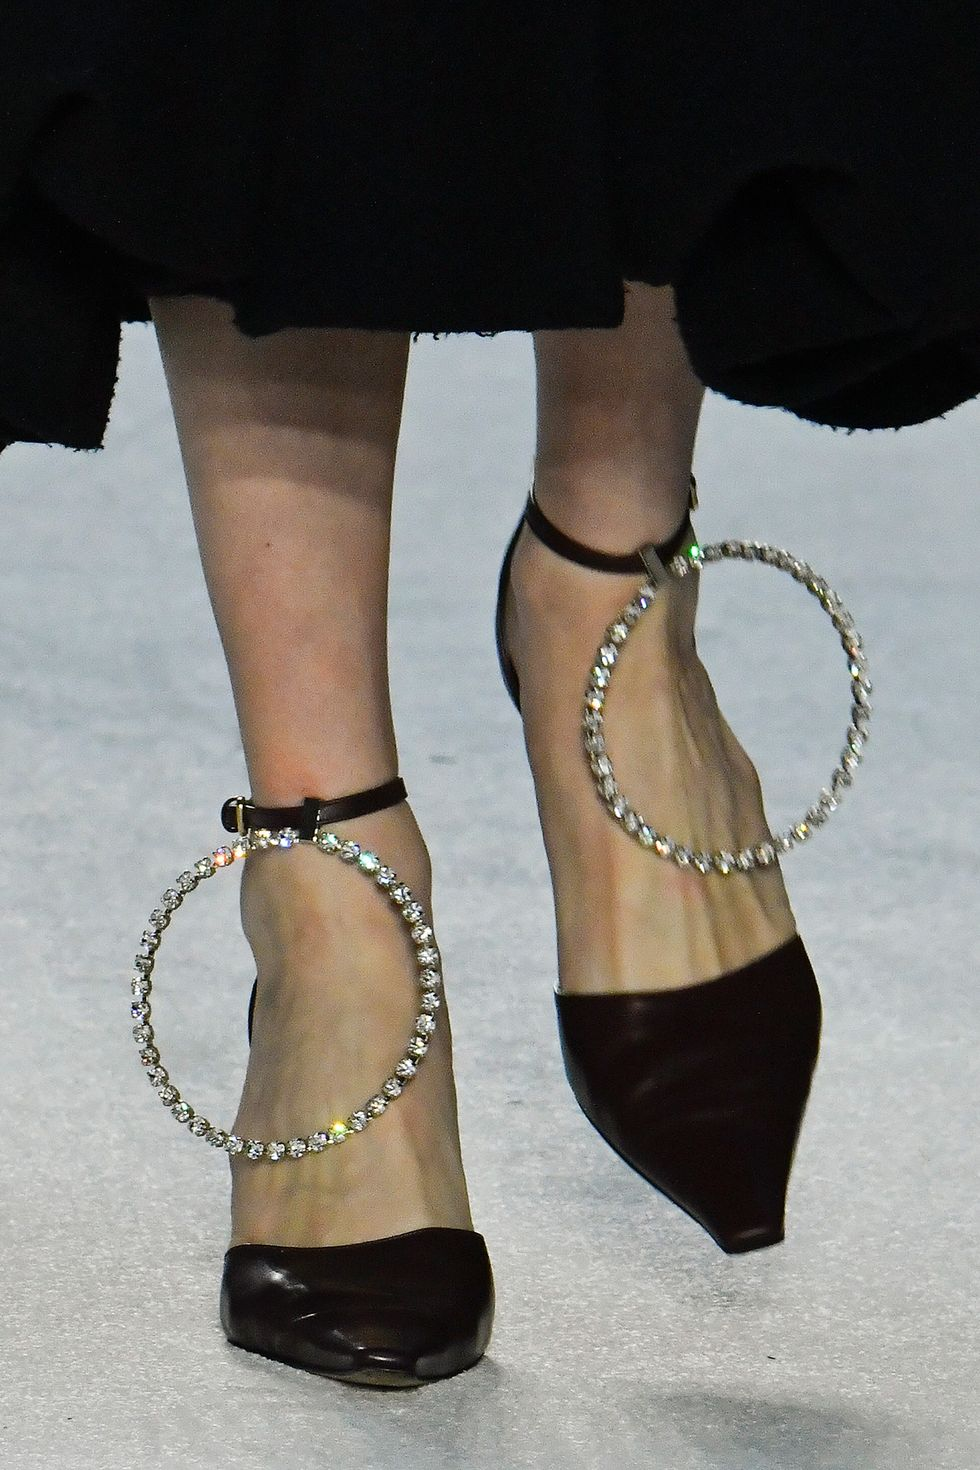 jw-anderson-fall-2020-runway-rhinestone-shoes-1581991635.jpg (980×1470)